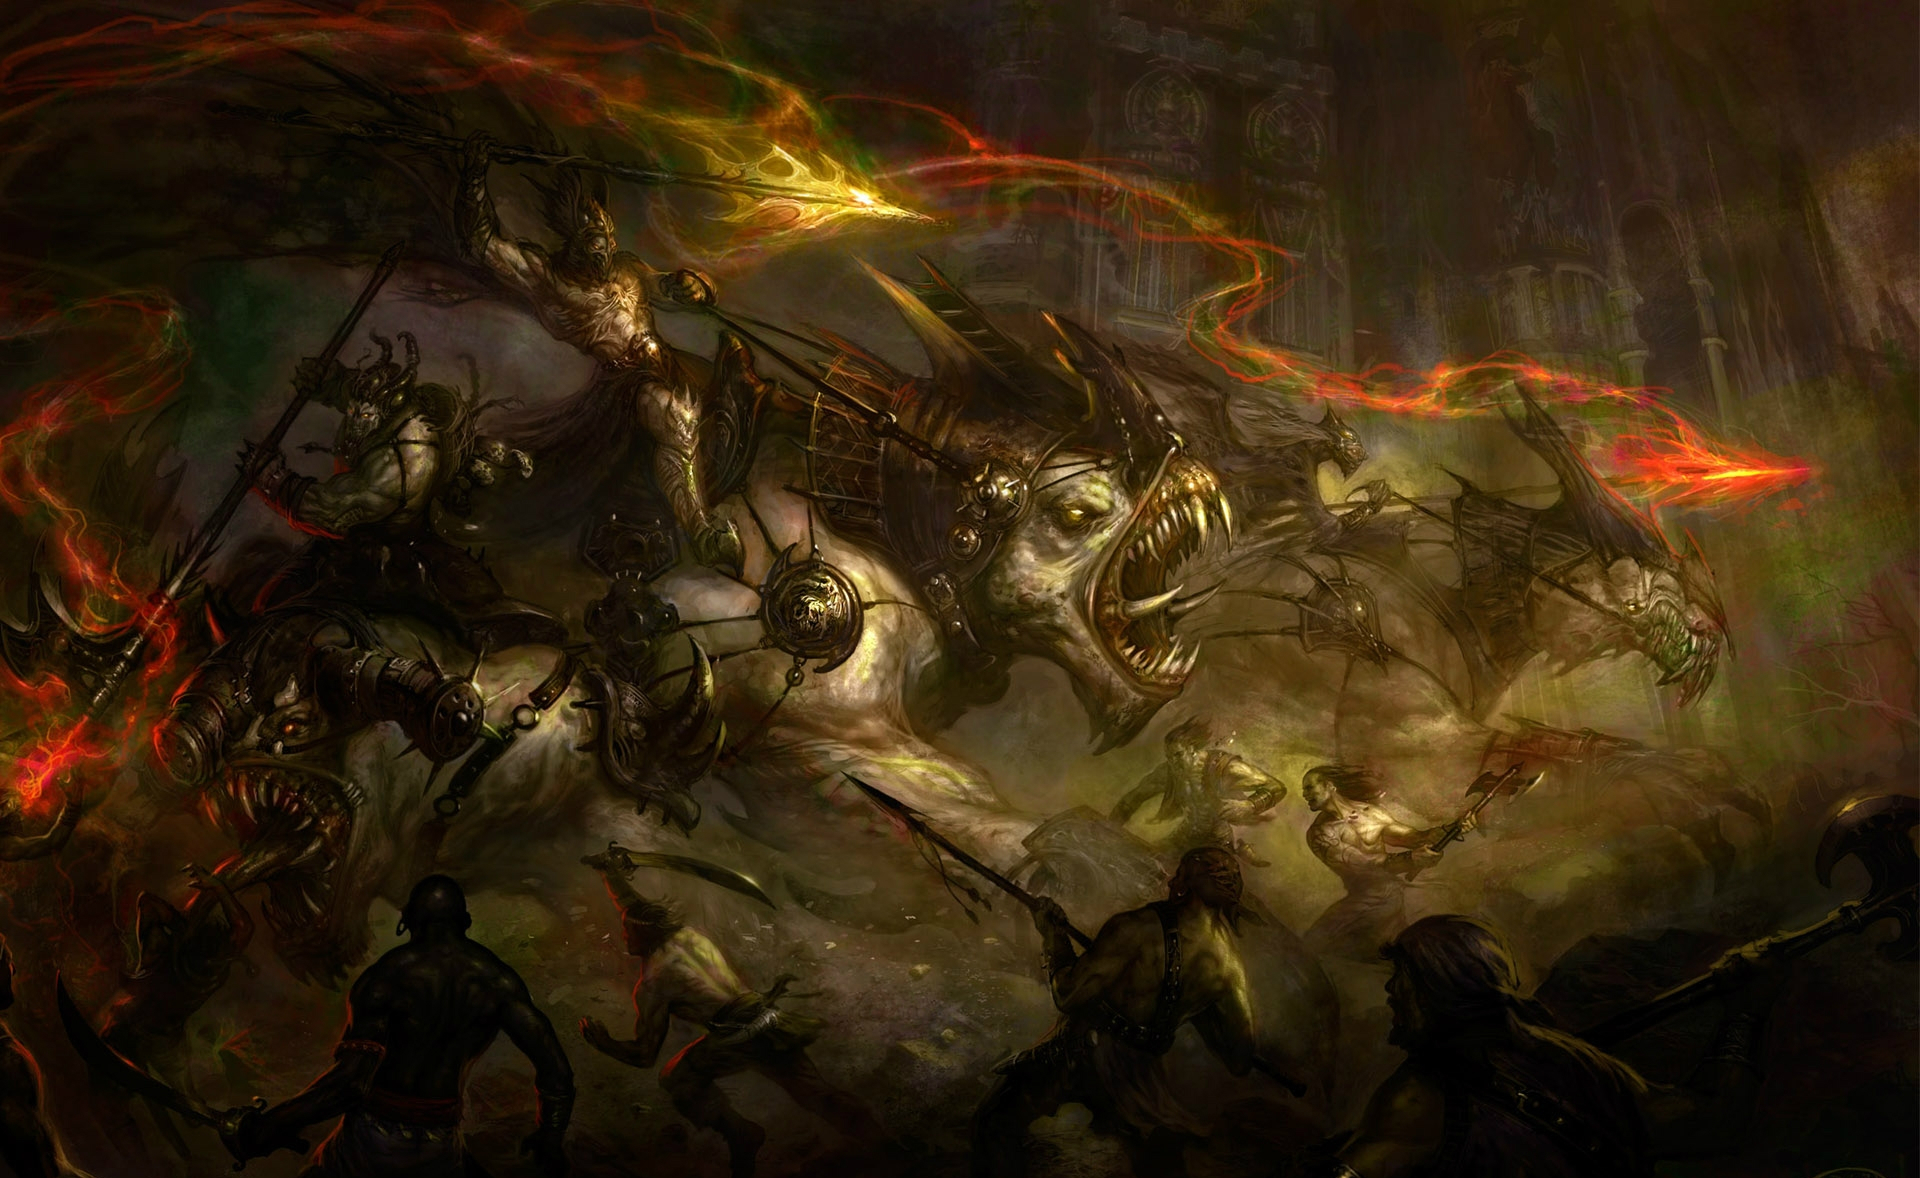 the art of war hd fantasy battle scene wallpapers